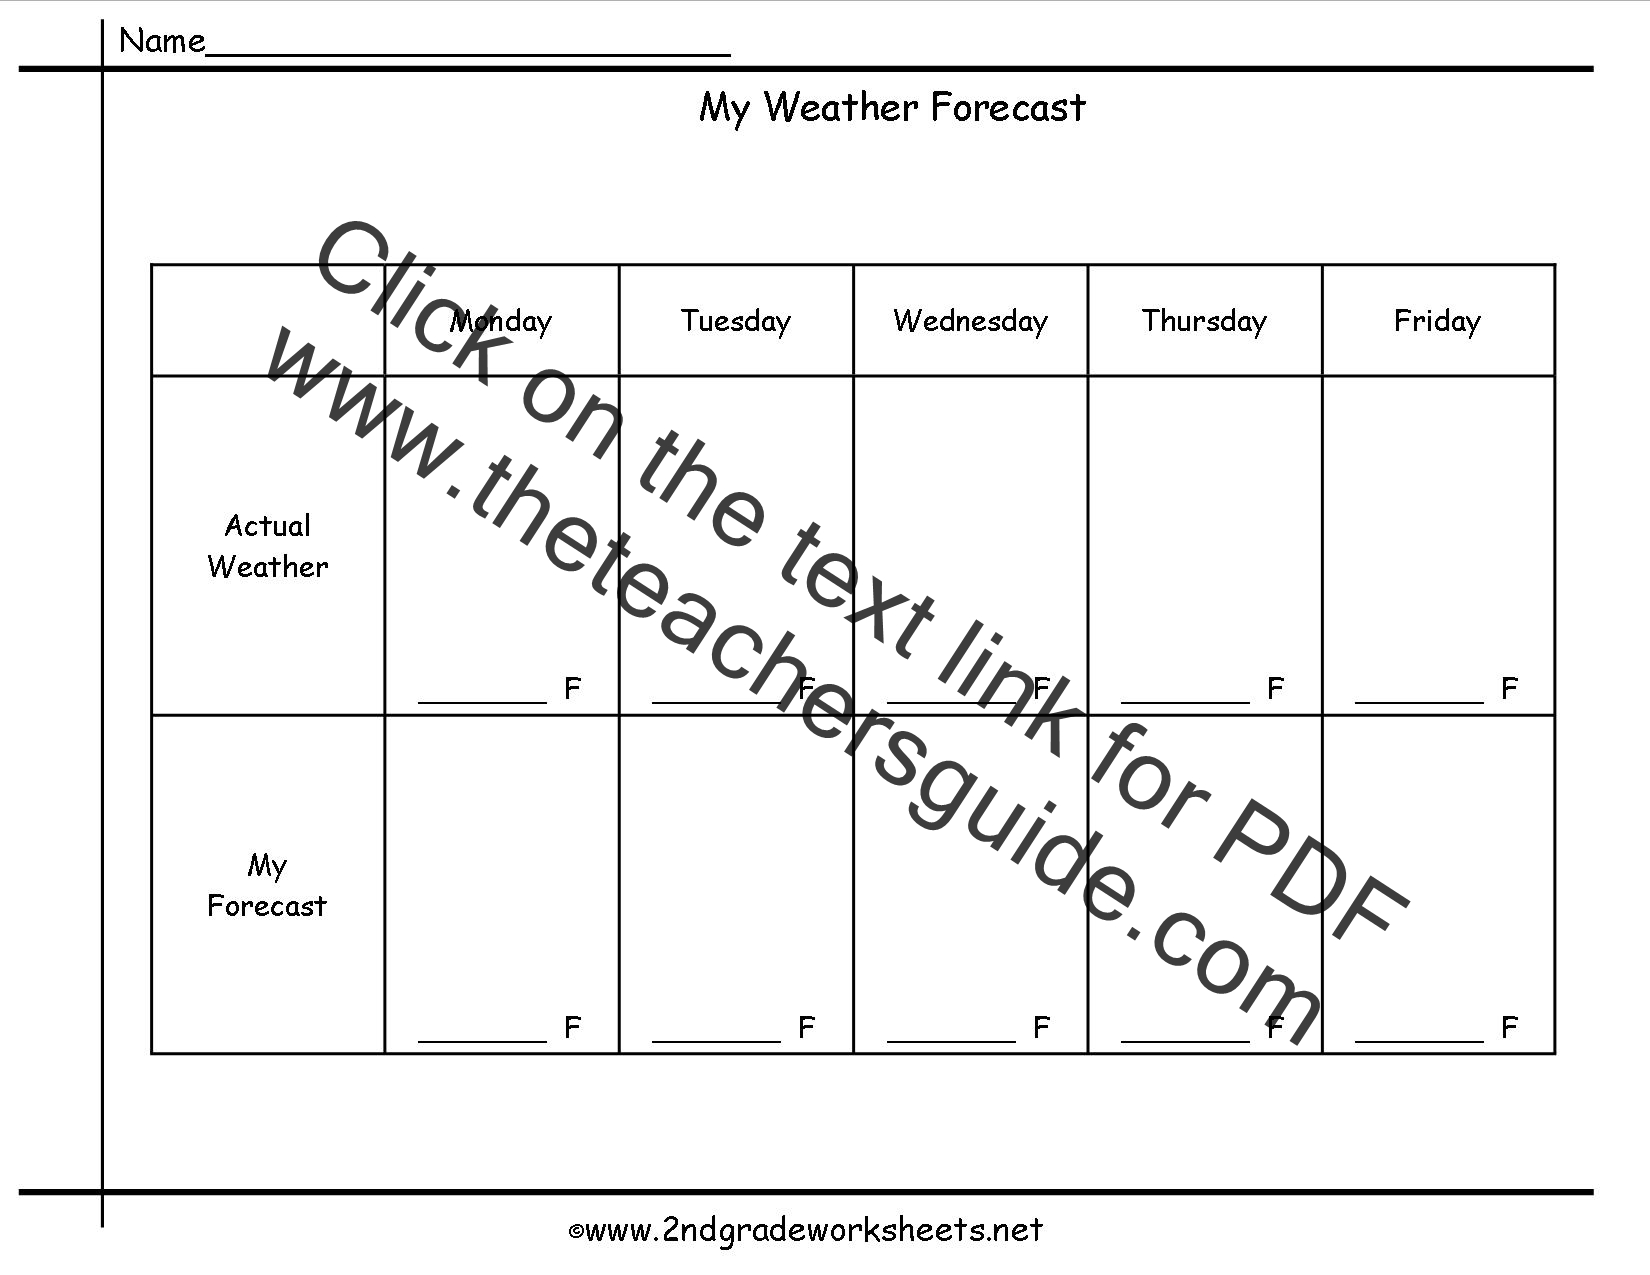 Ndgradeworksheets - Weather forecast printable